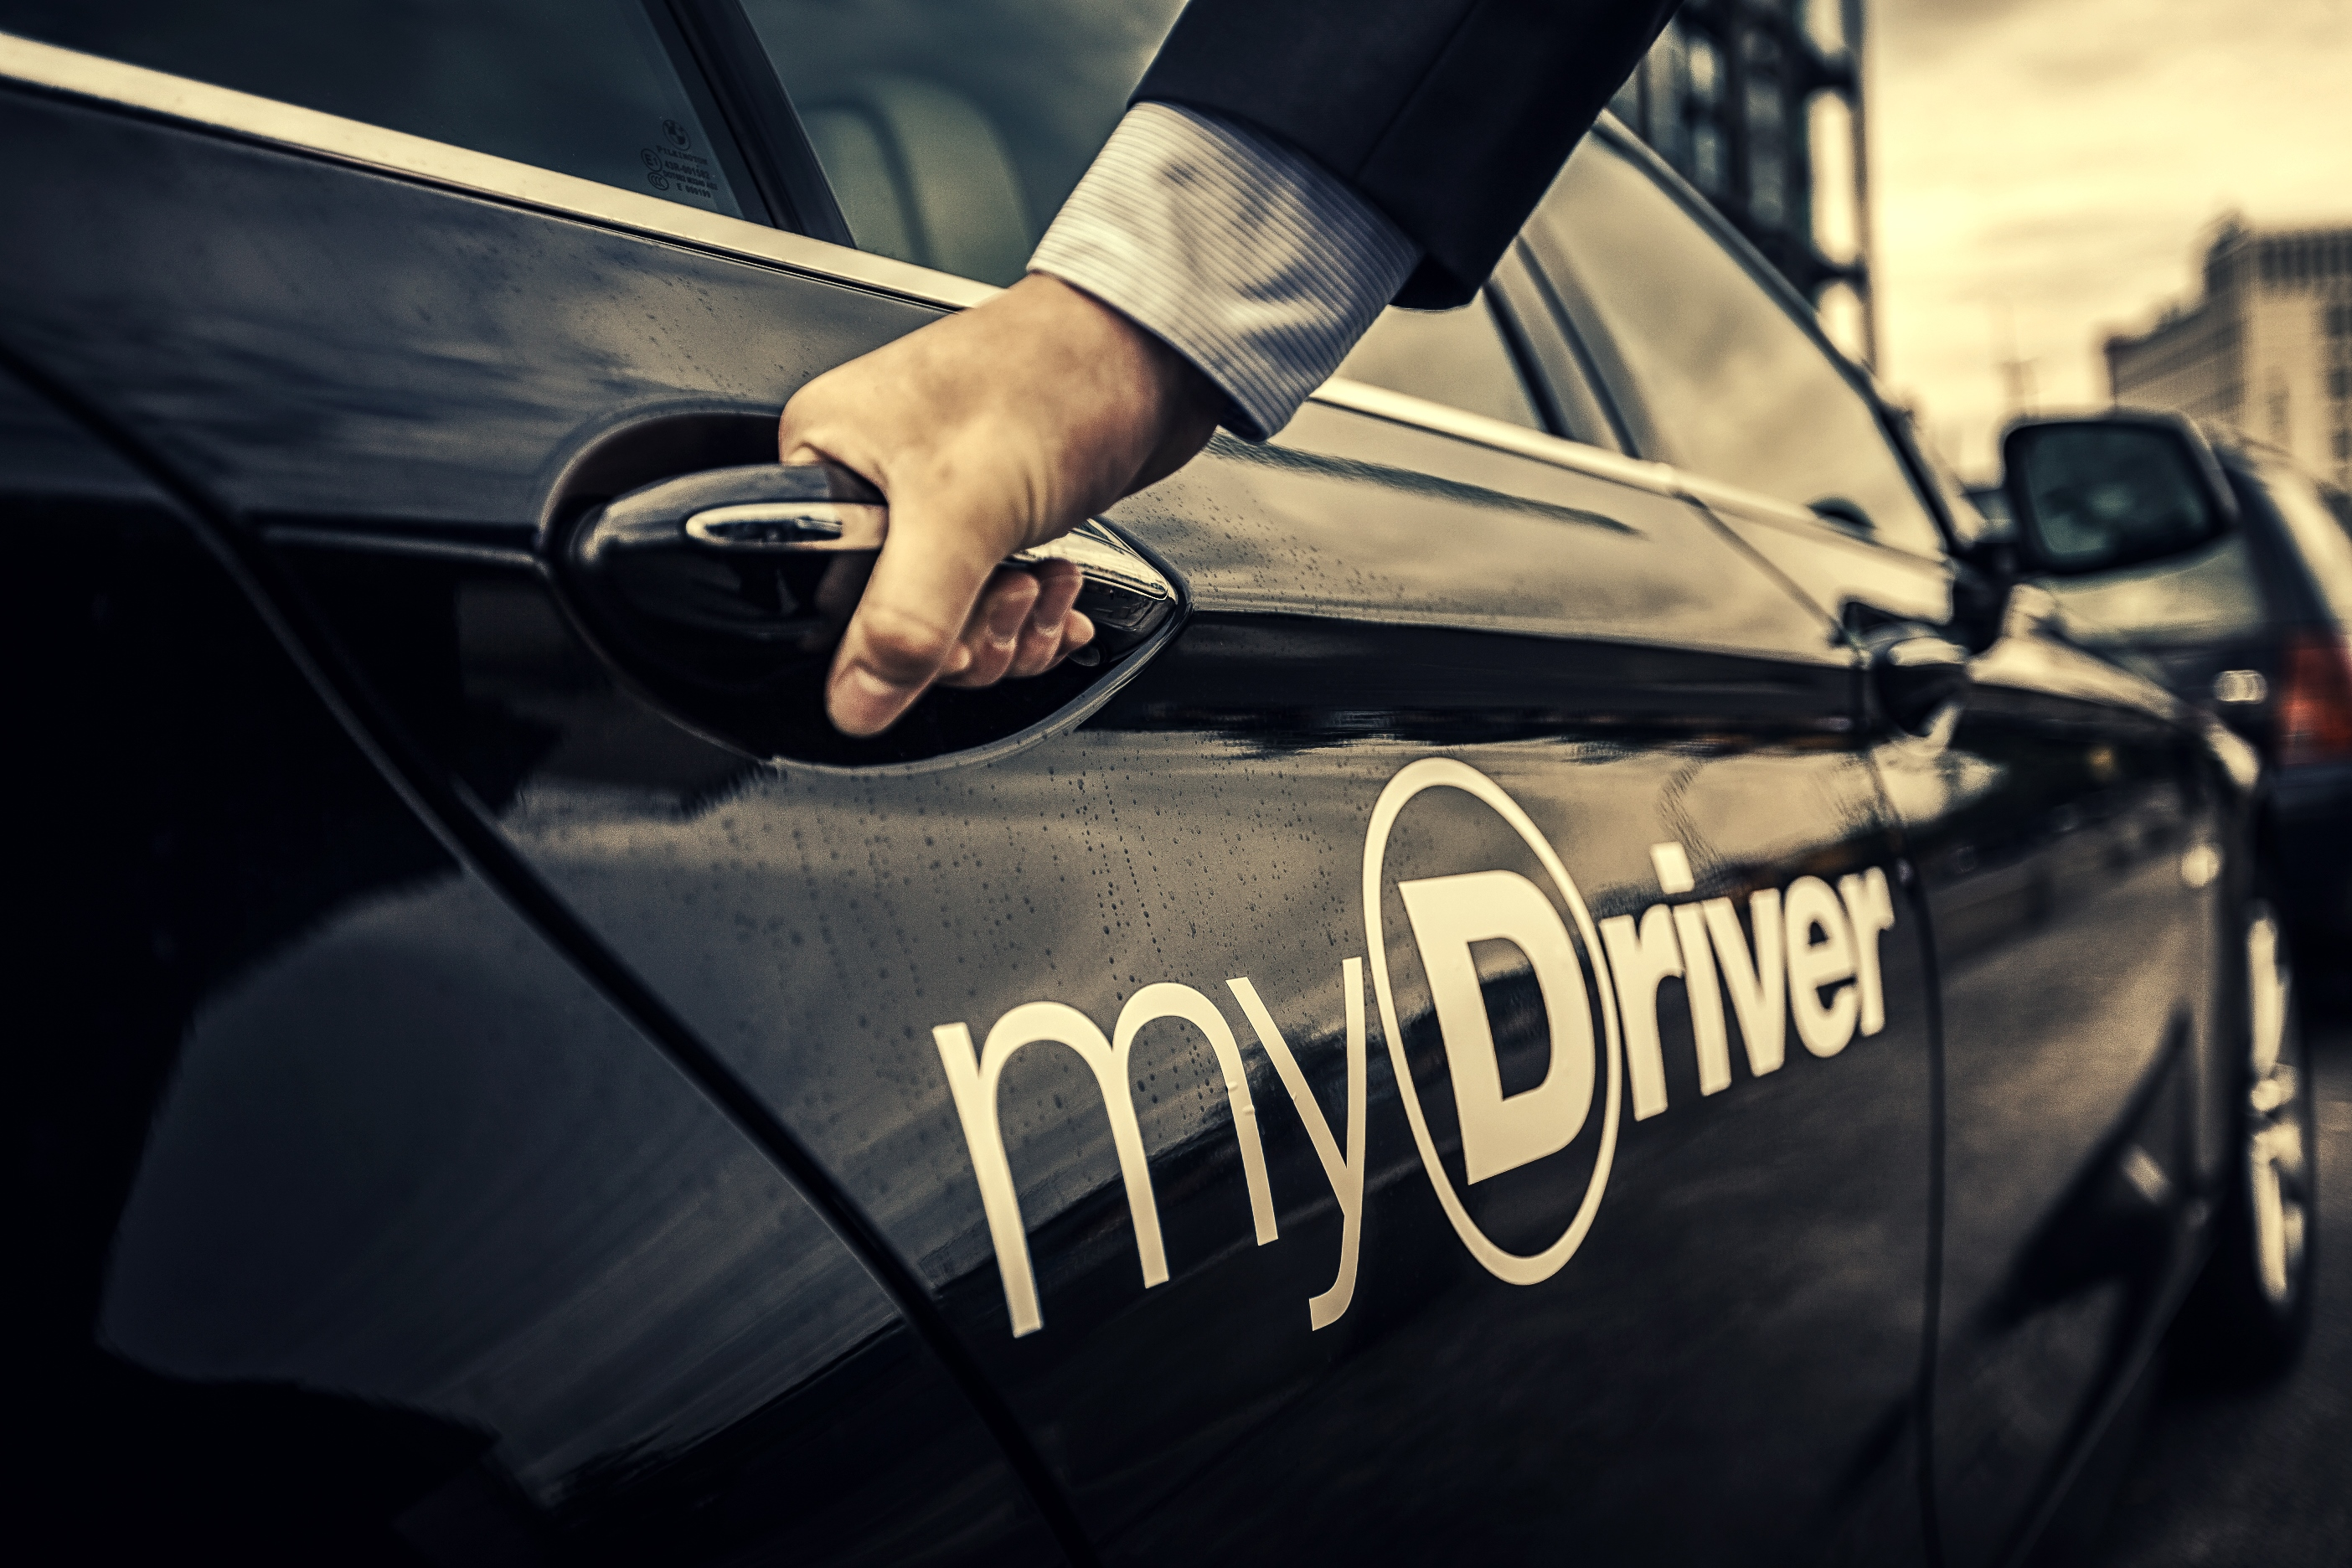 myDriver Picture by DavidUlrich- 3